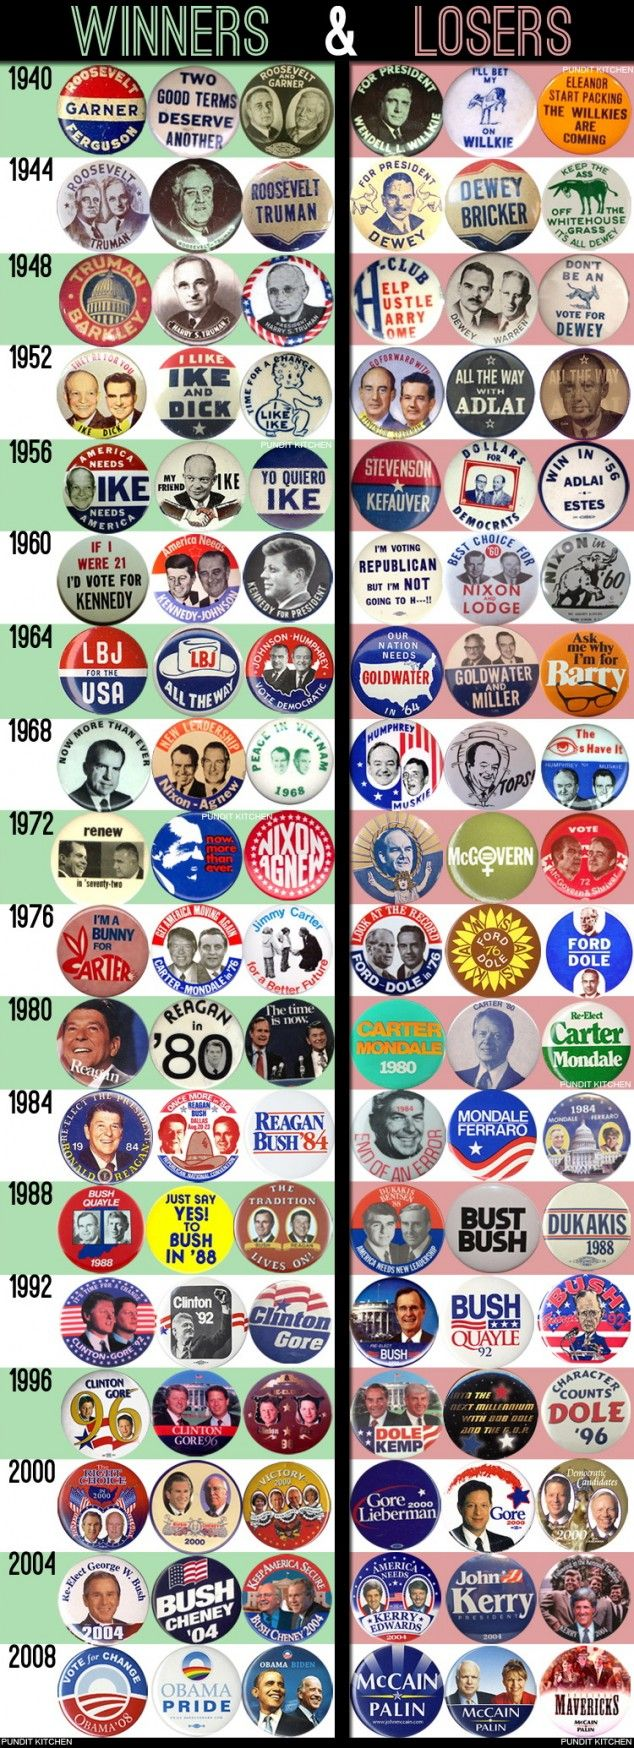 An interesting collection of political campaign buttons from the 1940's through 2008. They manage to say so much with their simple messages.